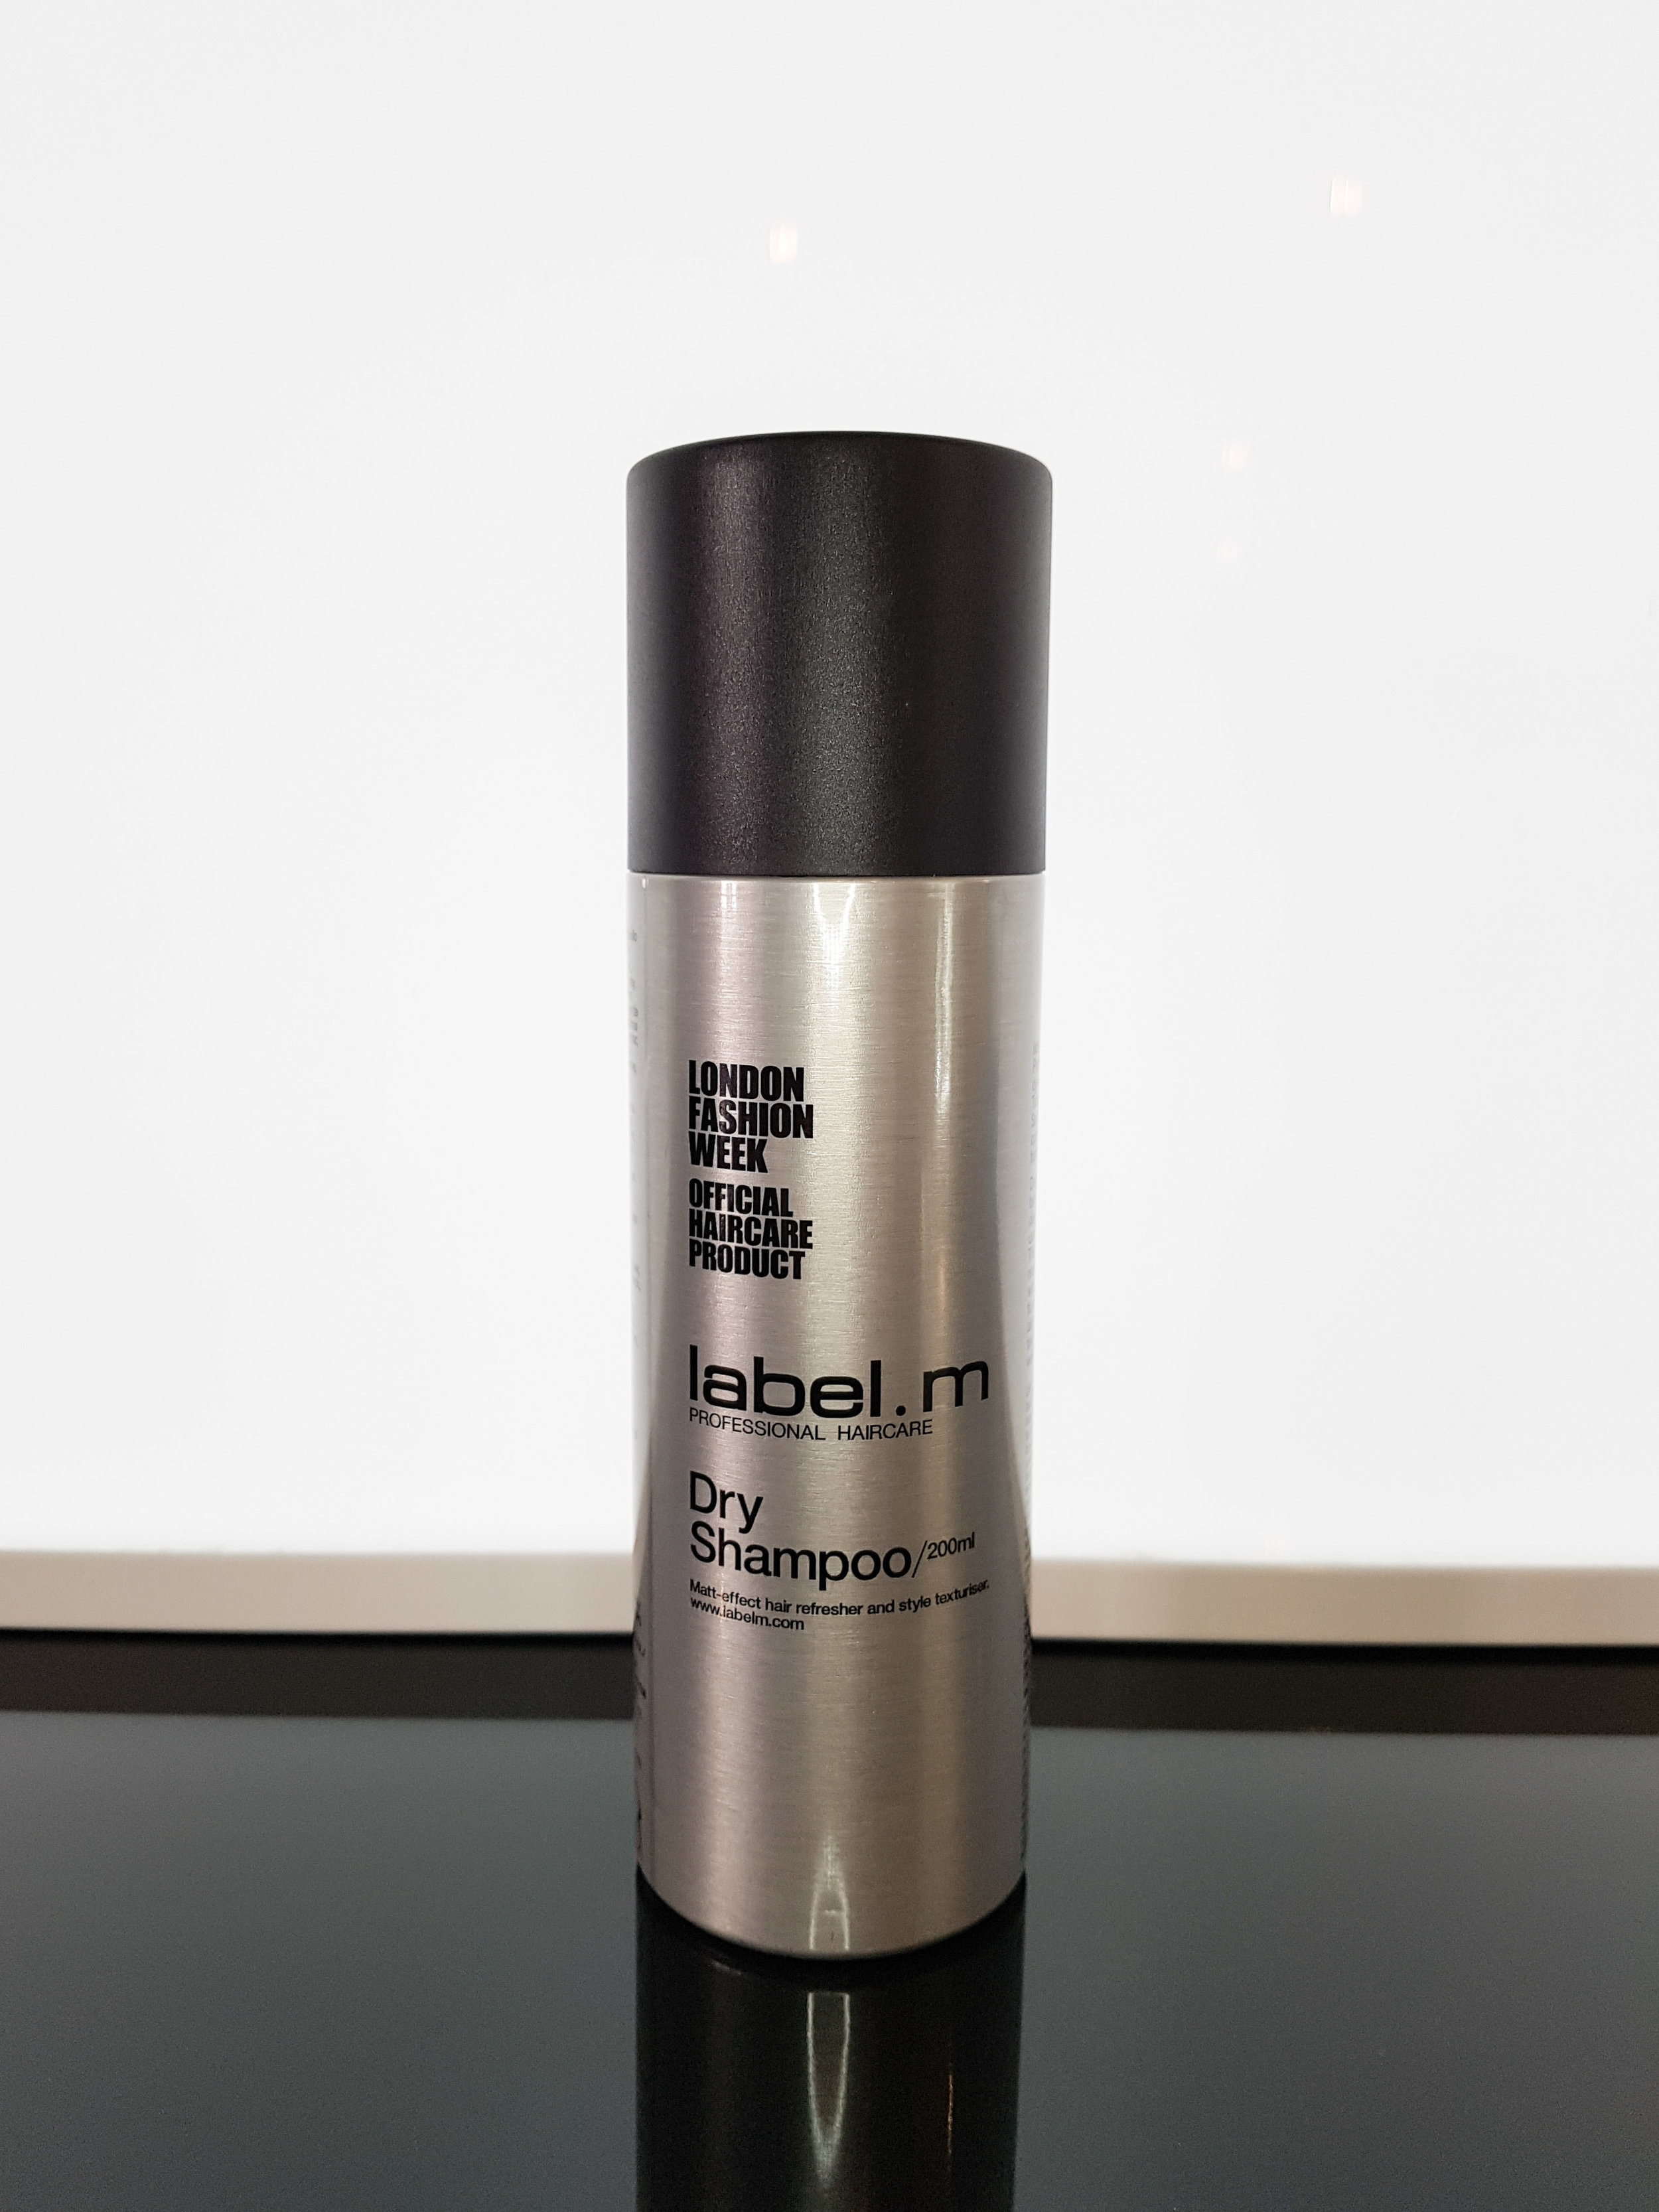 STEP 1 - Seperate the hair and spray in dry shampoo at the roots. Tip: to avoid getting that chalky affect, spray at a distance of around 30cm.